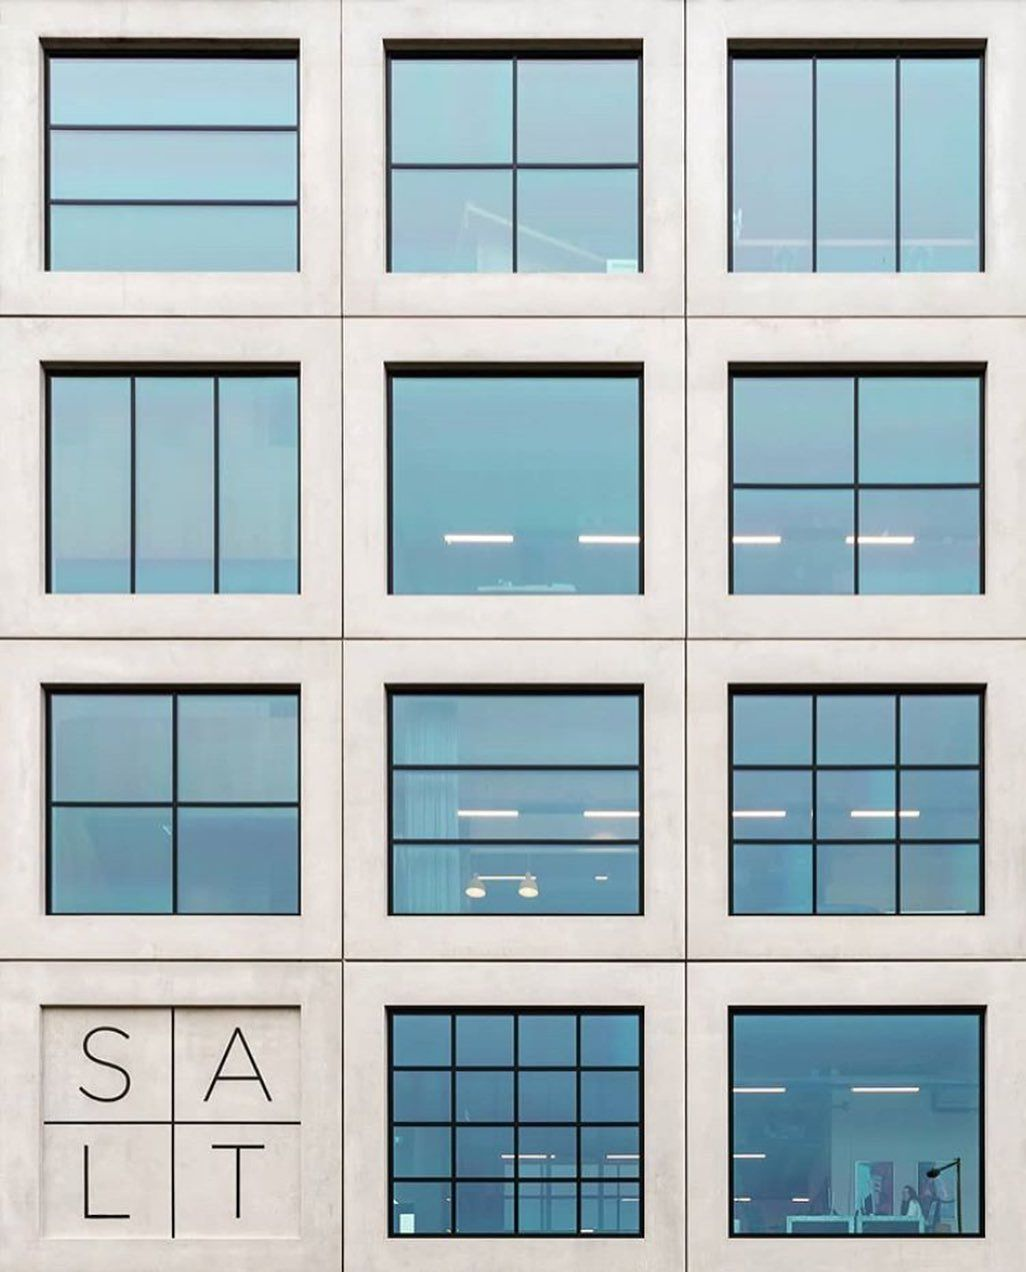 Great 📸 from @marcorama of the SALT building in Amsterdam #facade